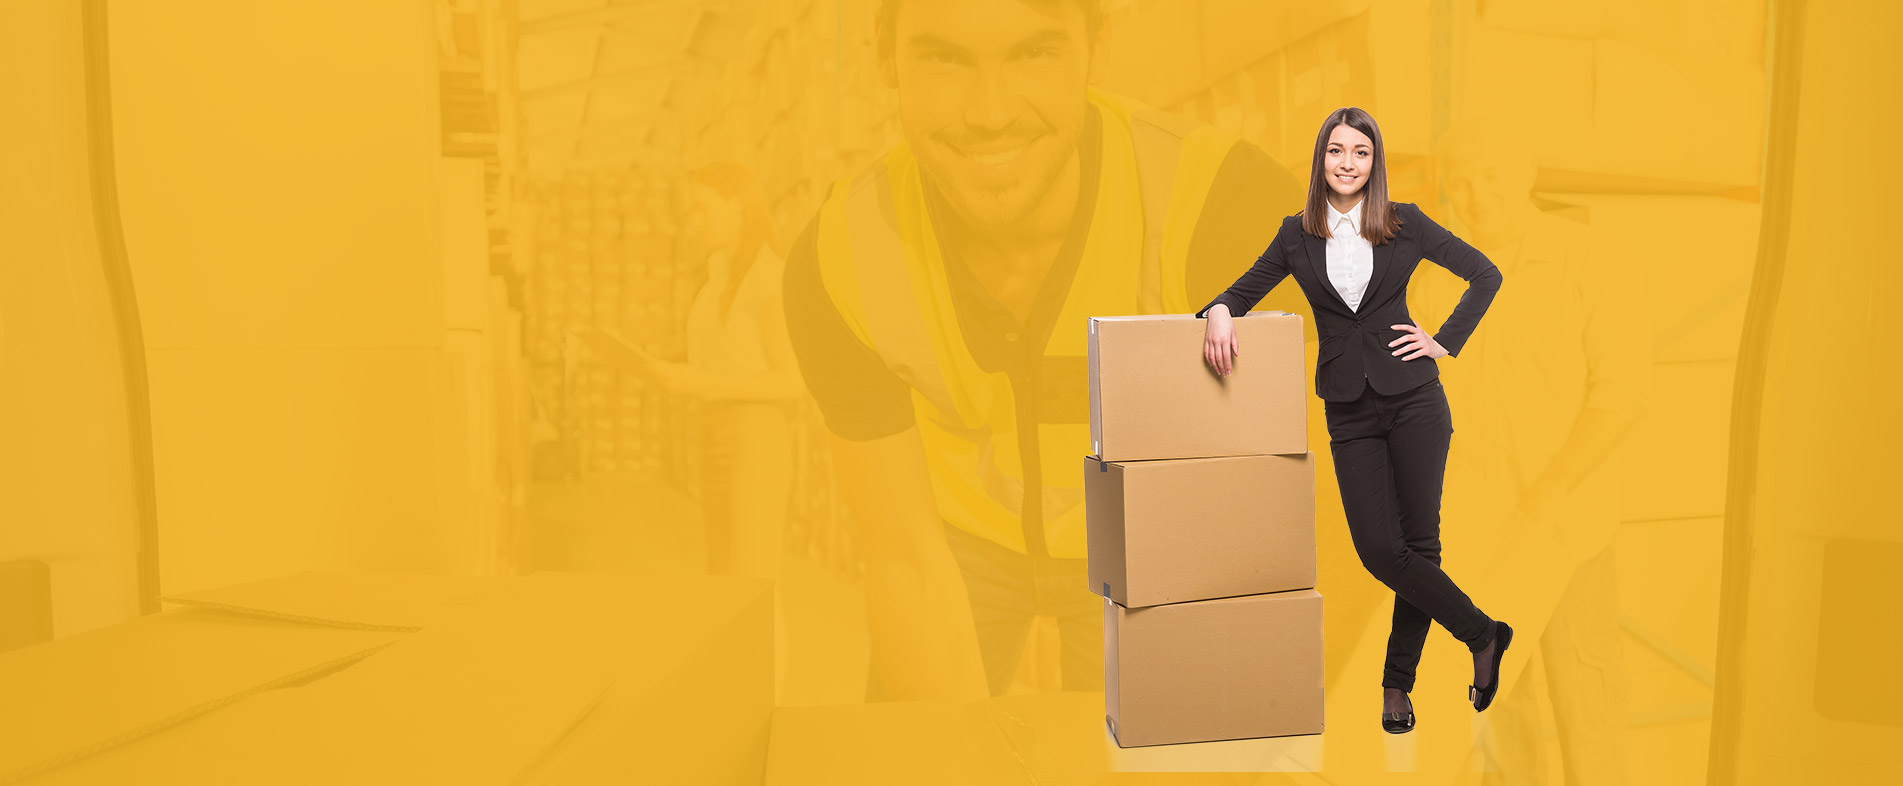 Our goal is to make your moving experience